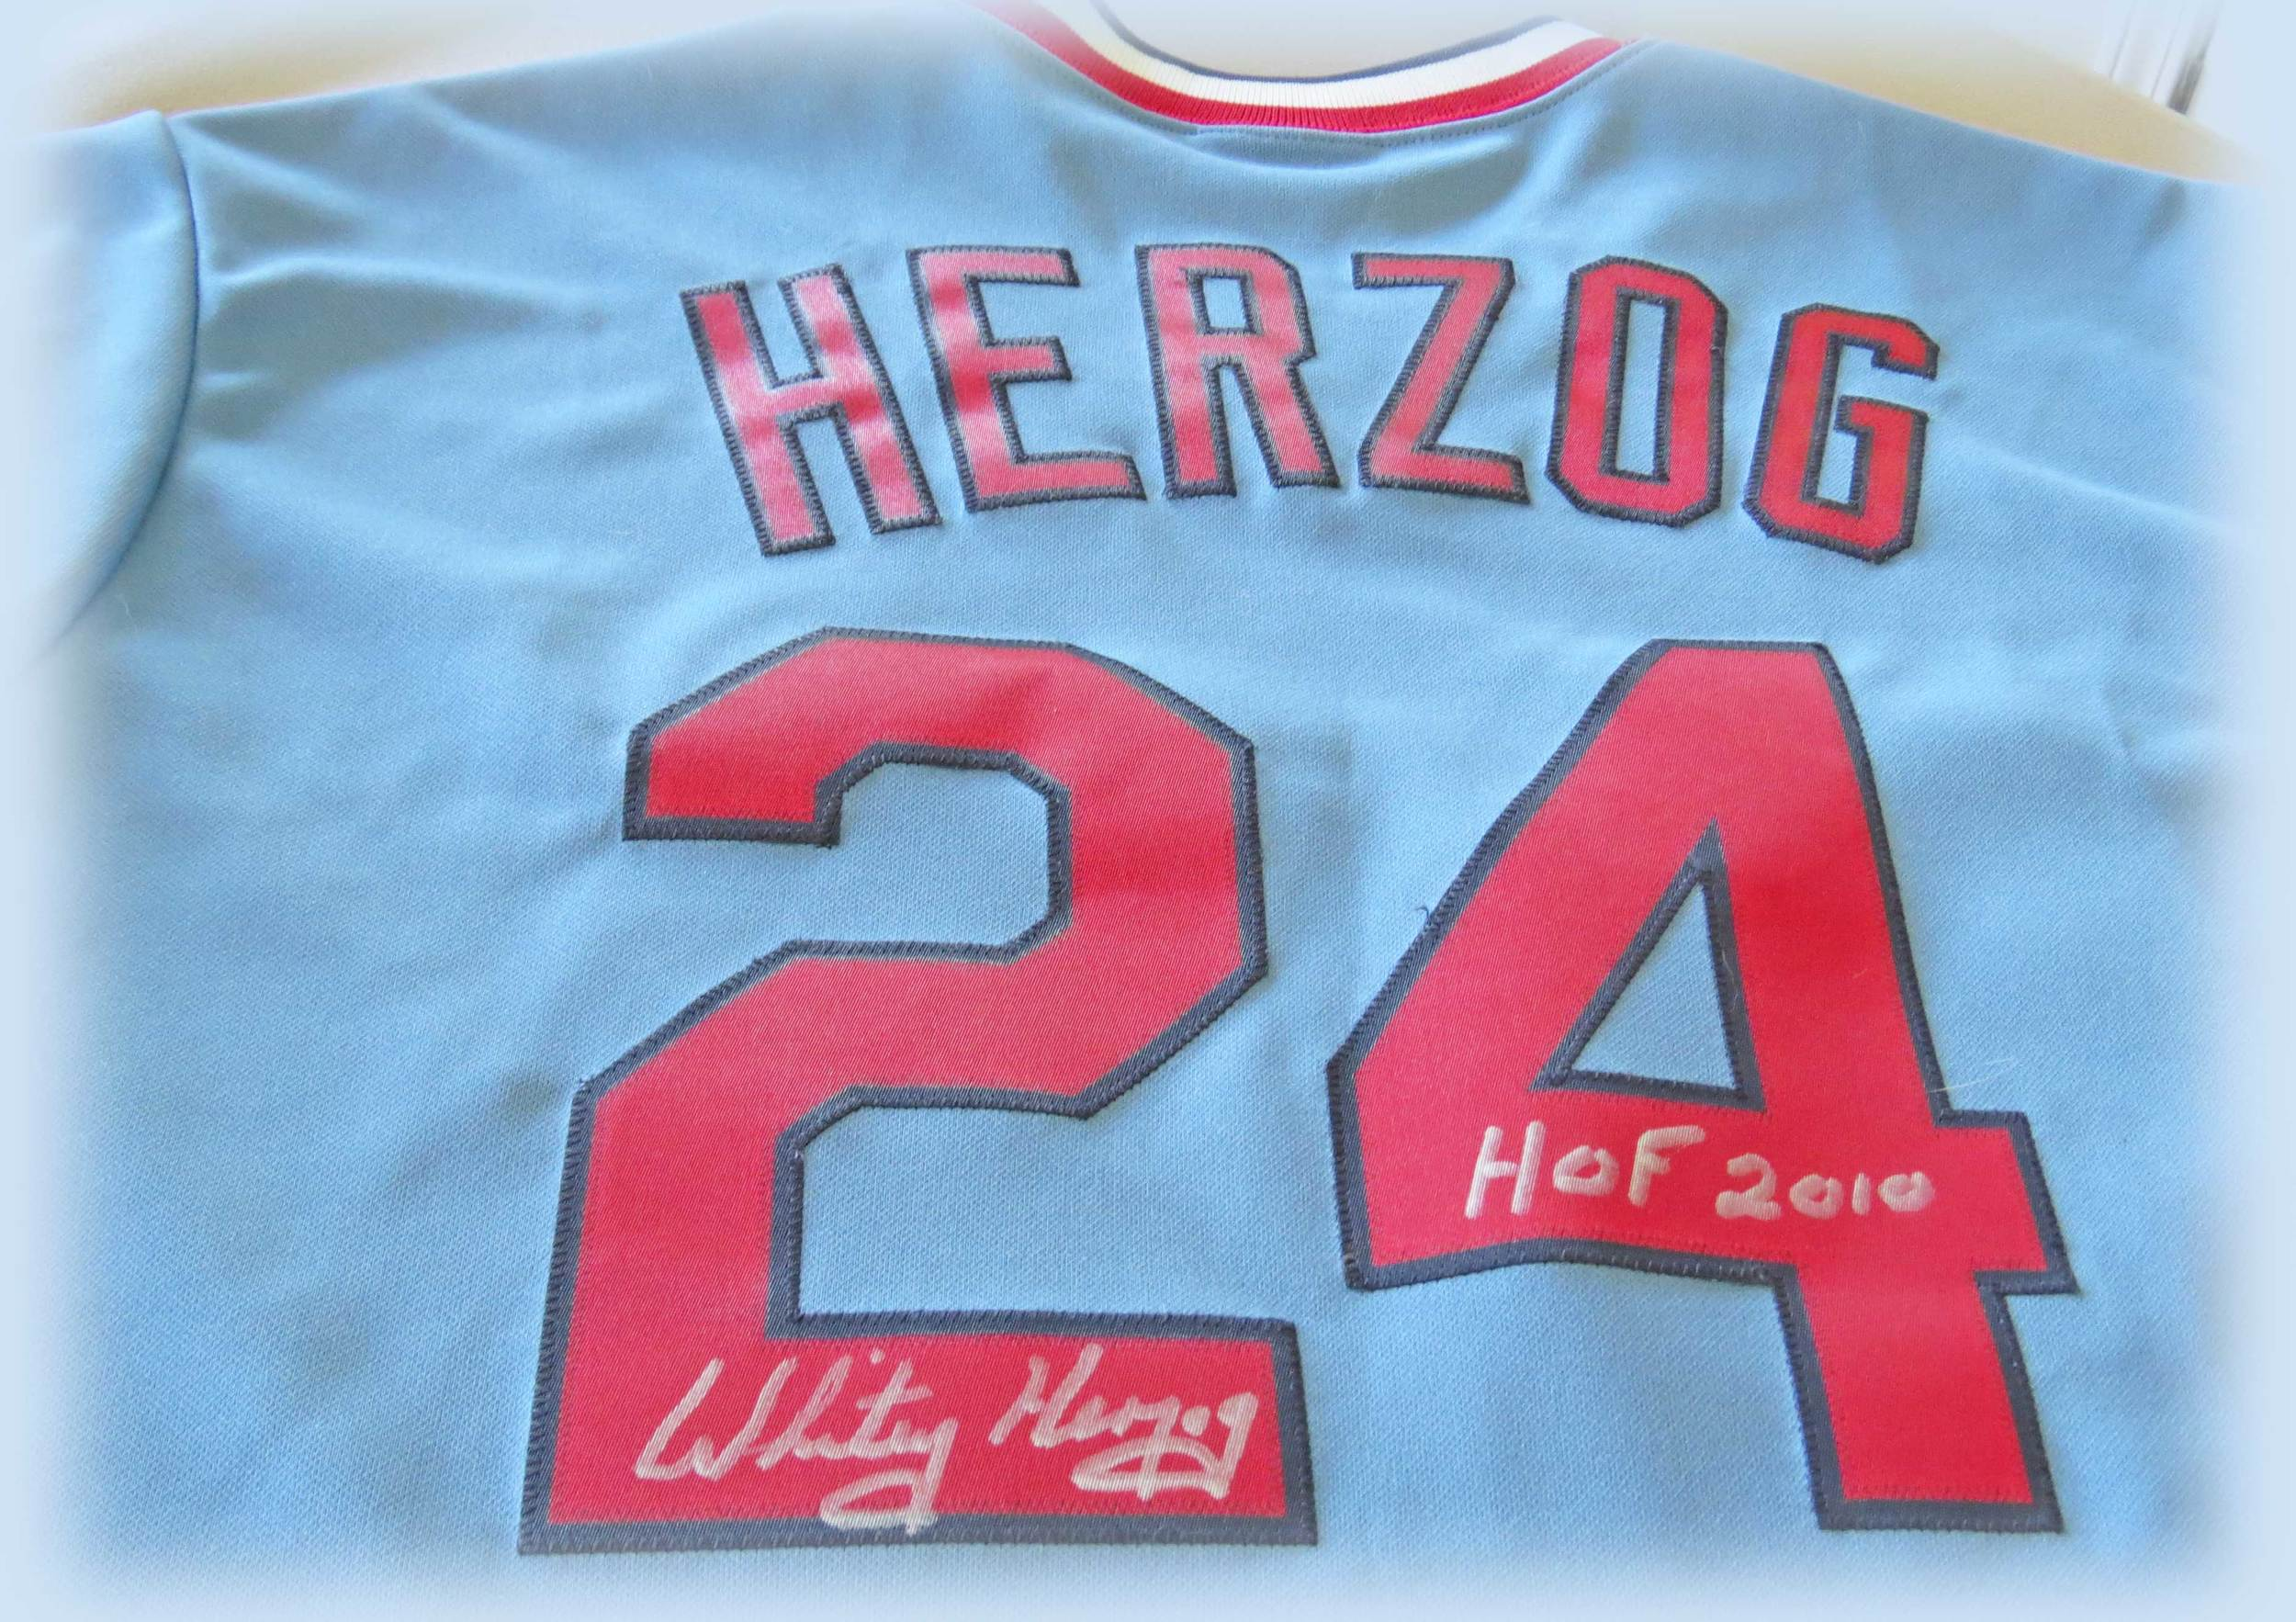 Jersey Worn by and Signed by Whitey Herzog